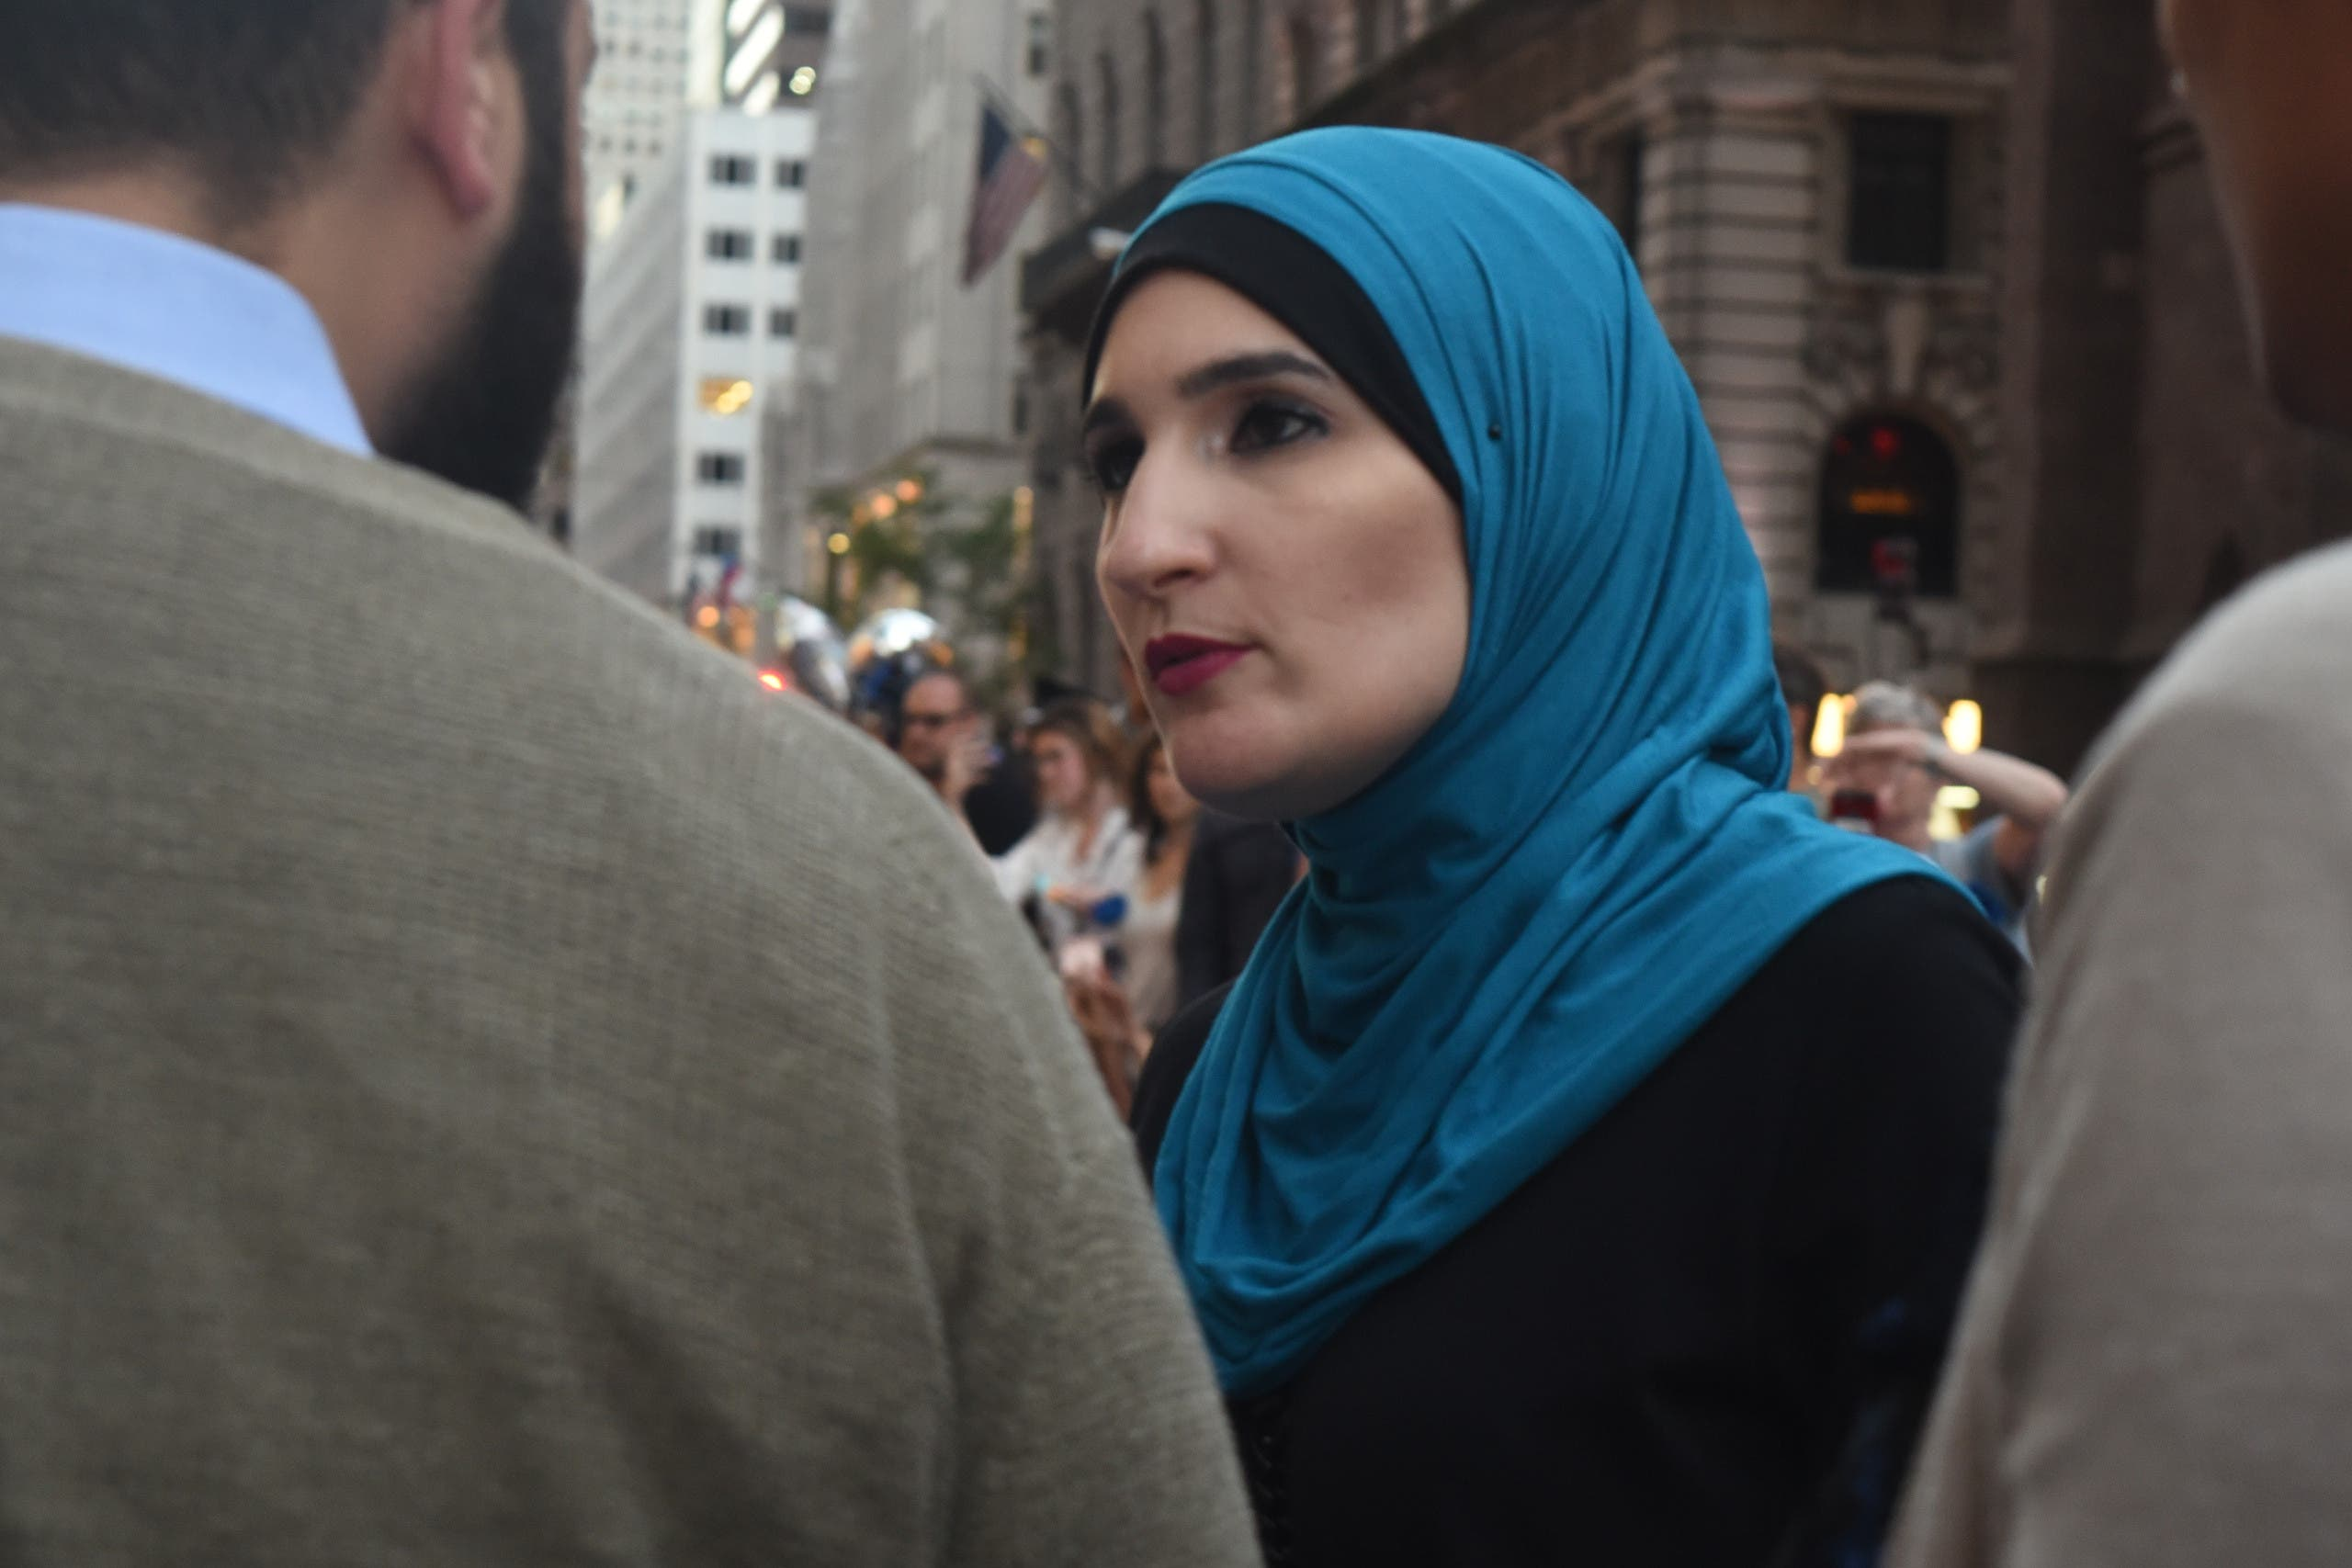 Sarsour3: Sarsour speaks to the press before iftar begins.